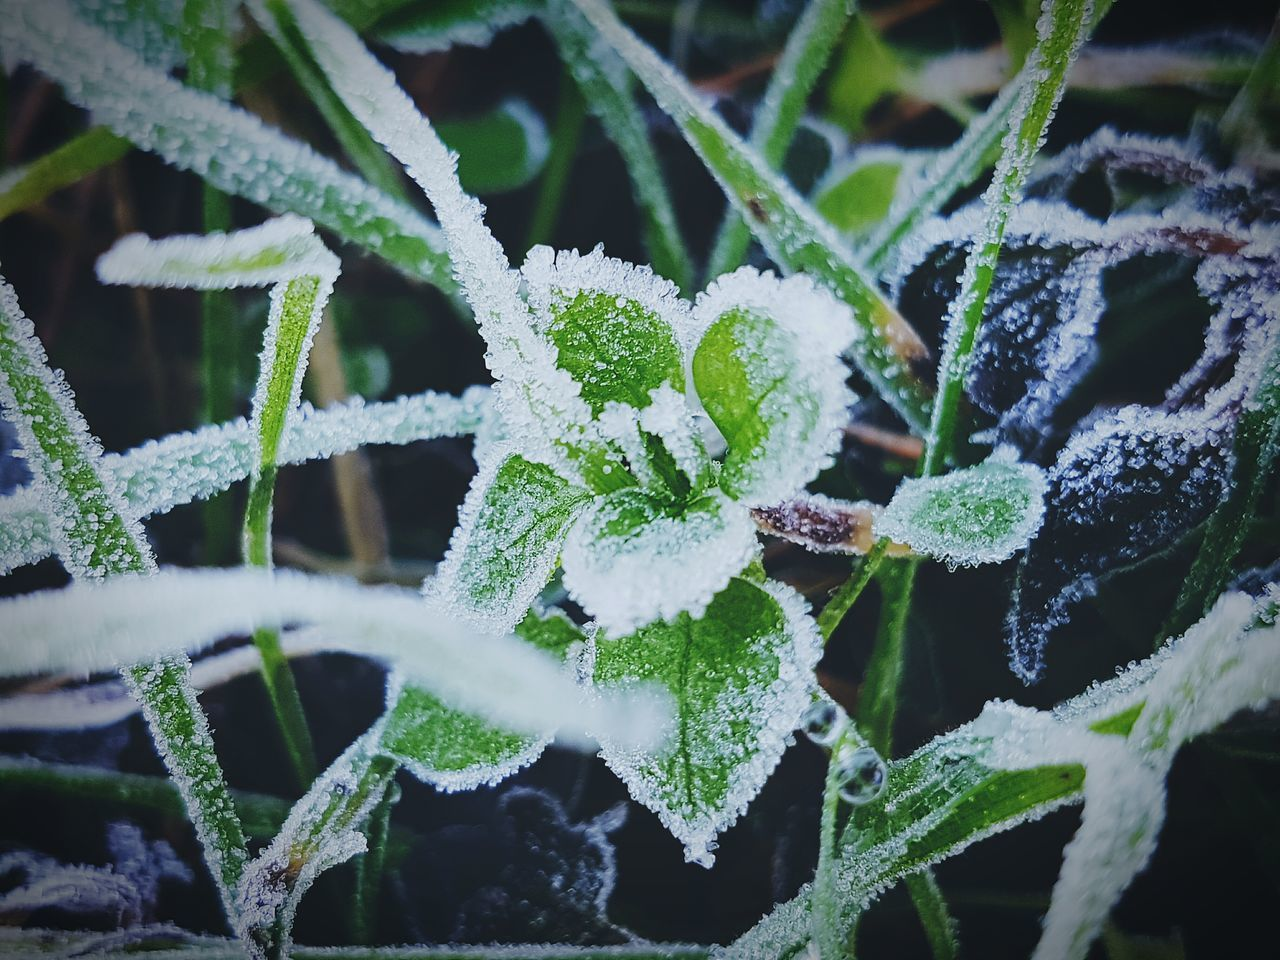 plant, green color, nature, beauty in nature, winter, no people, close-up, leaf, cold temperature, outdoors, frozen, snow, growth, day, focus on foreground, high angle view, freshness, fragility, water